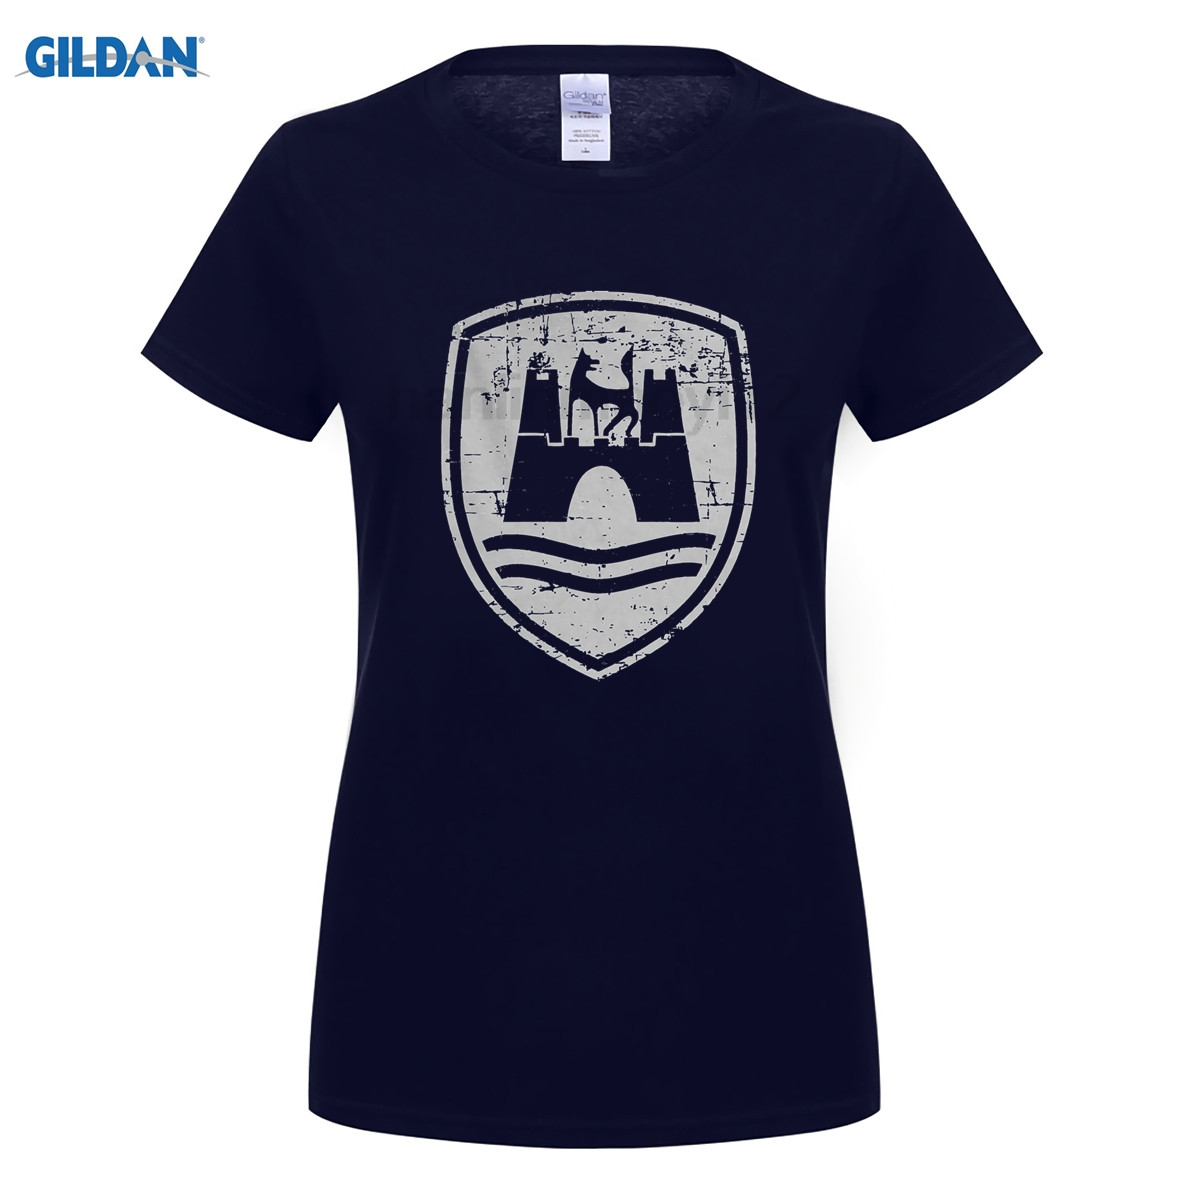 GILDAN Classico Di Wolfsburg, Uomo Campervan T-shirt Cotton T-Shirt Fashion T Shirt for women